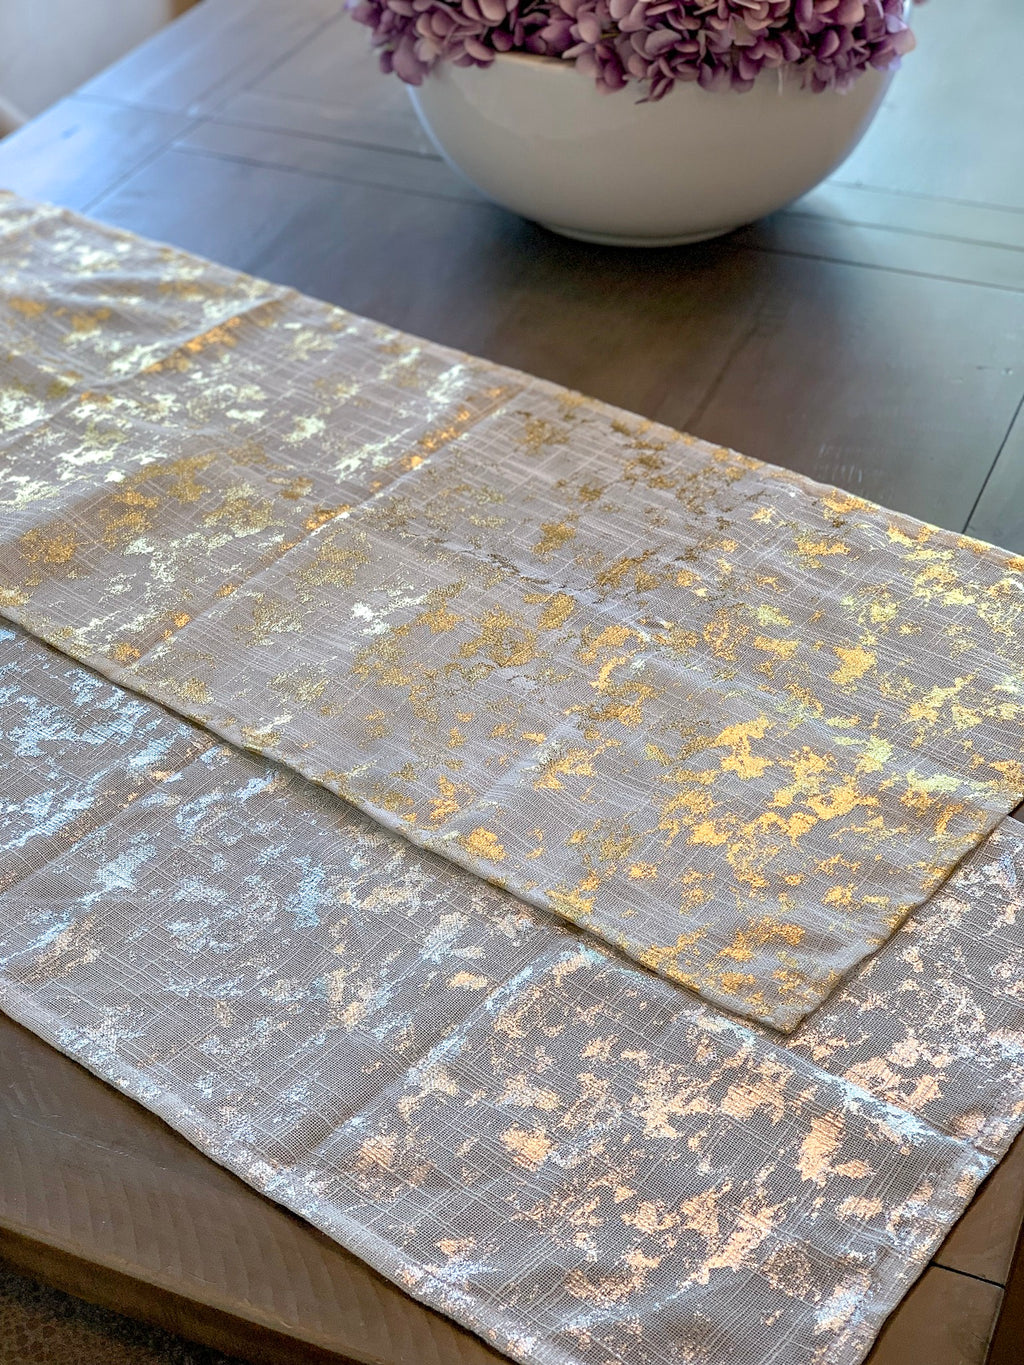 Foil Design Table Runner - (2 Colors)